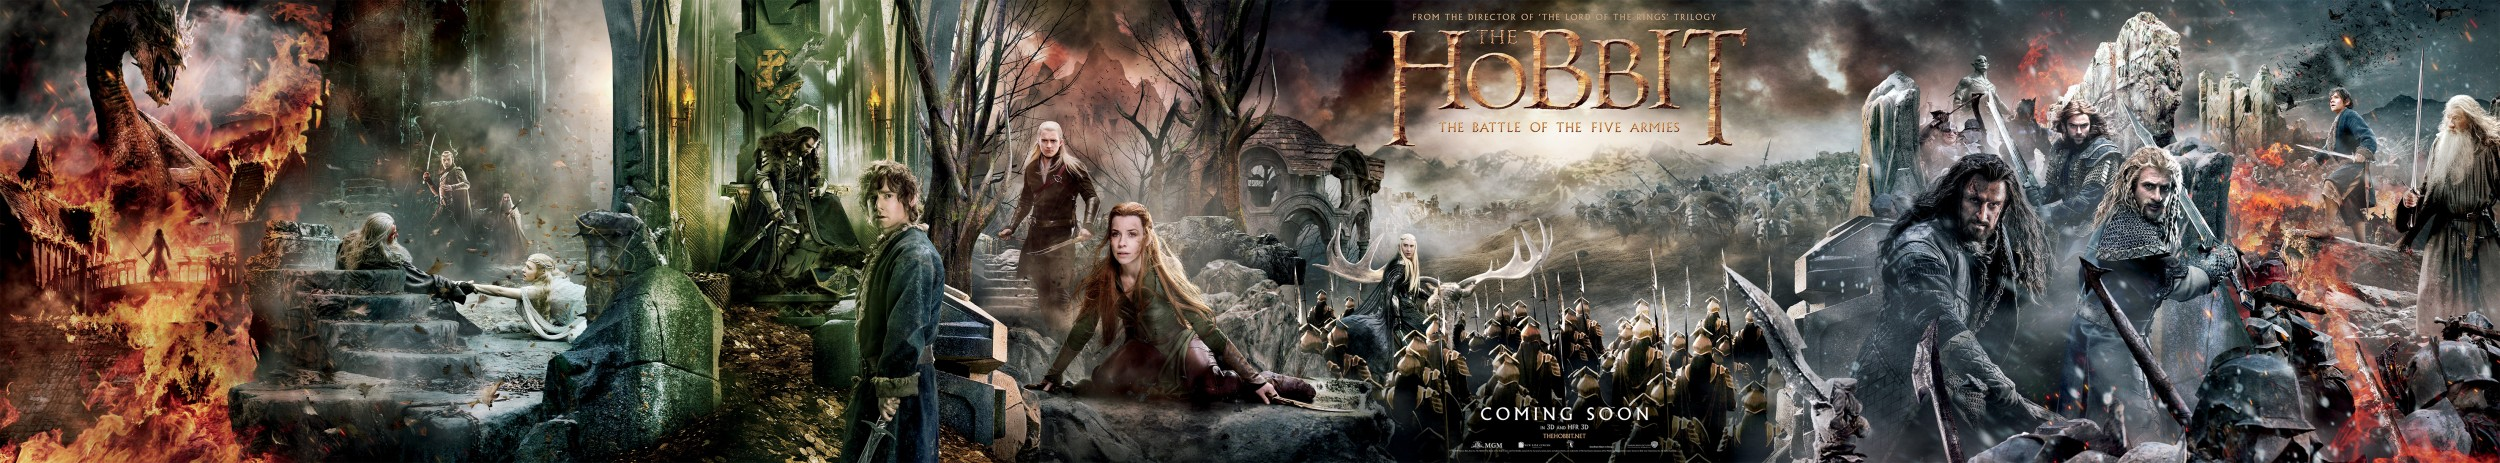 Show-Stopping Banner For The Hobbit: The Battle Of The Five Armies Teases Middle-Earth's Final Chapter